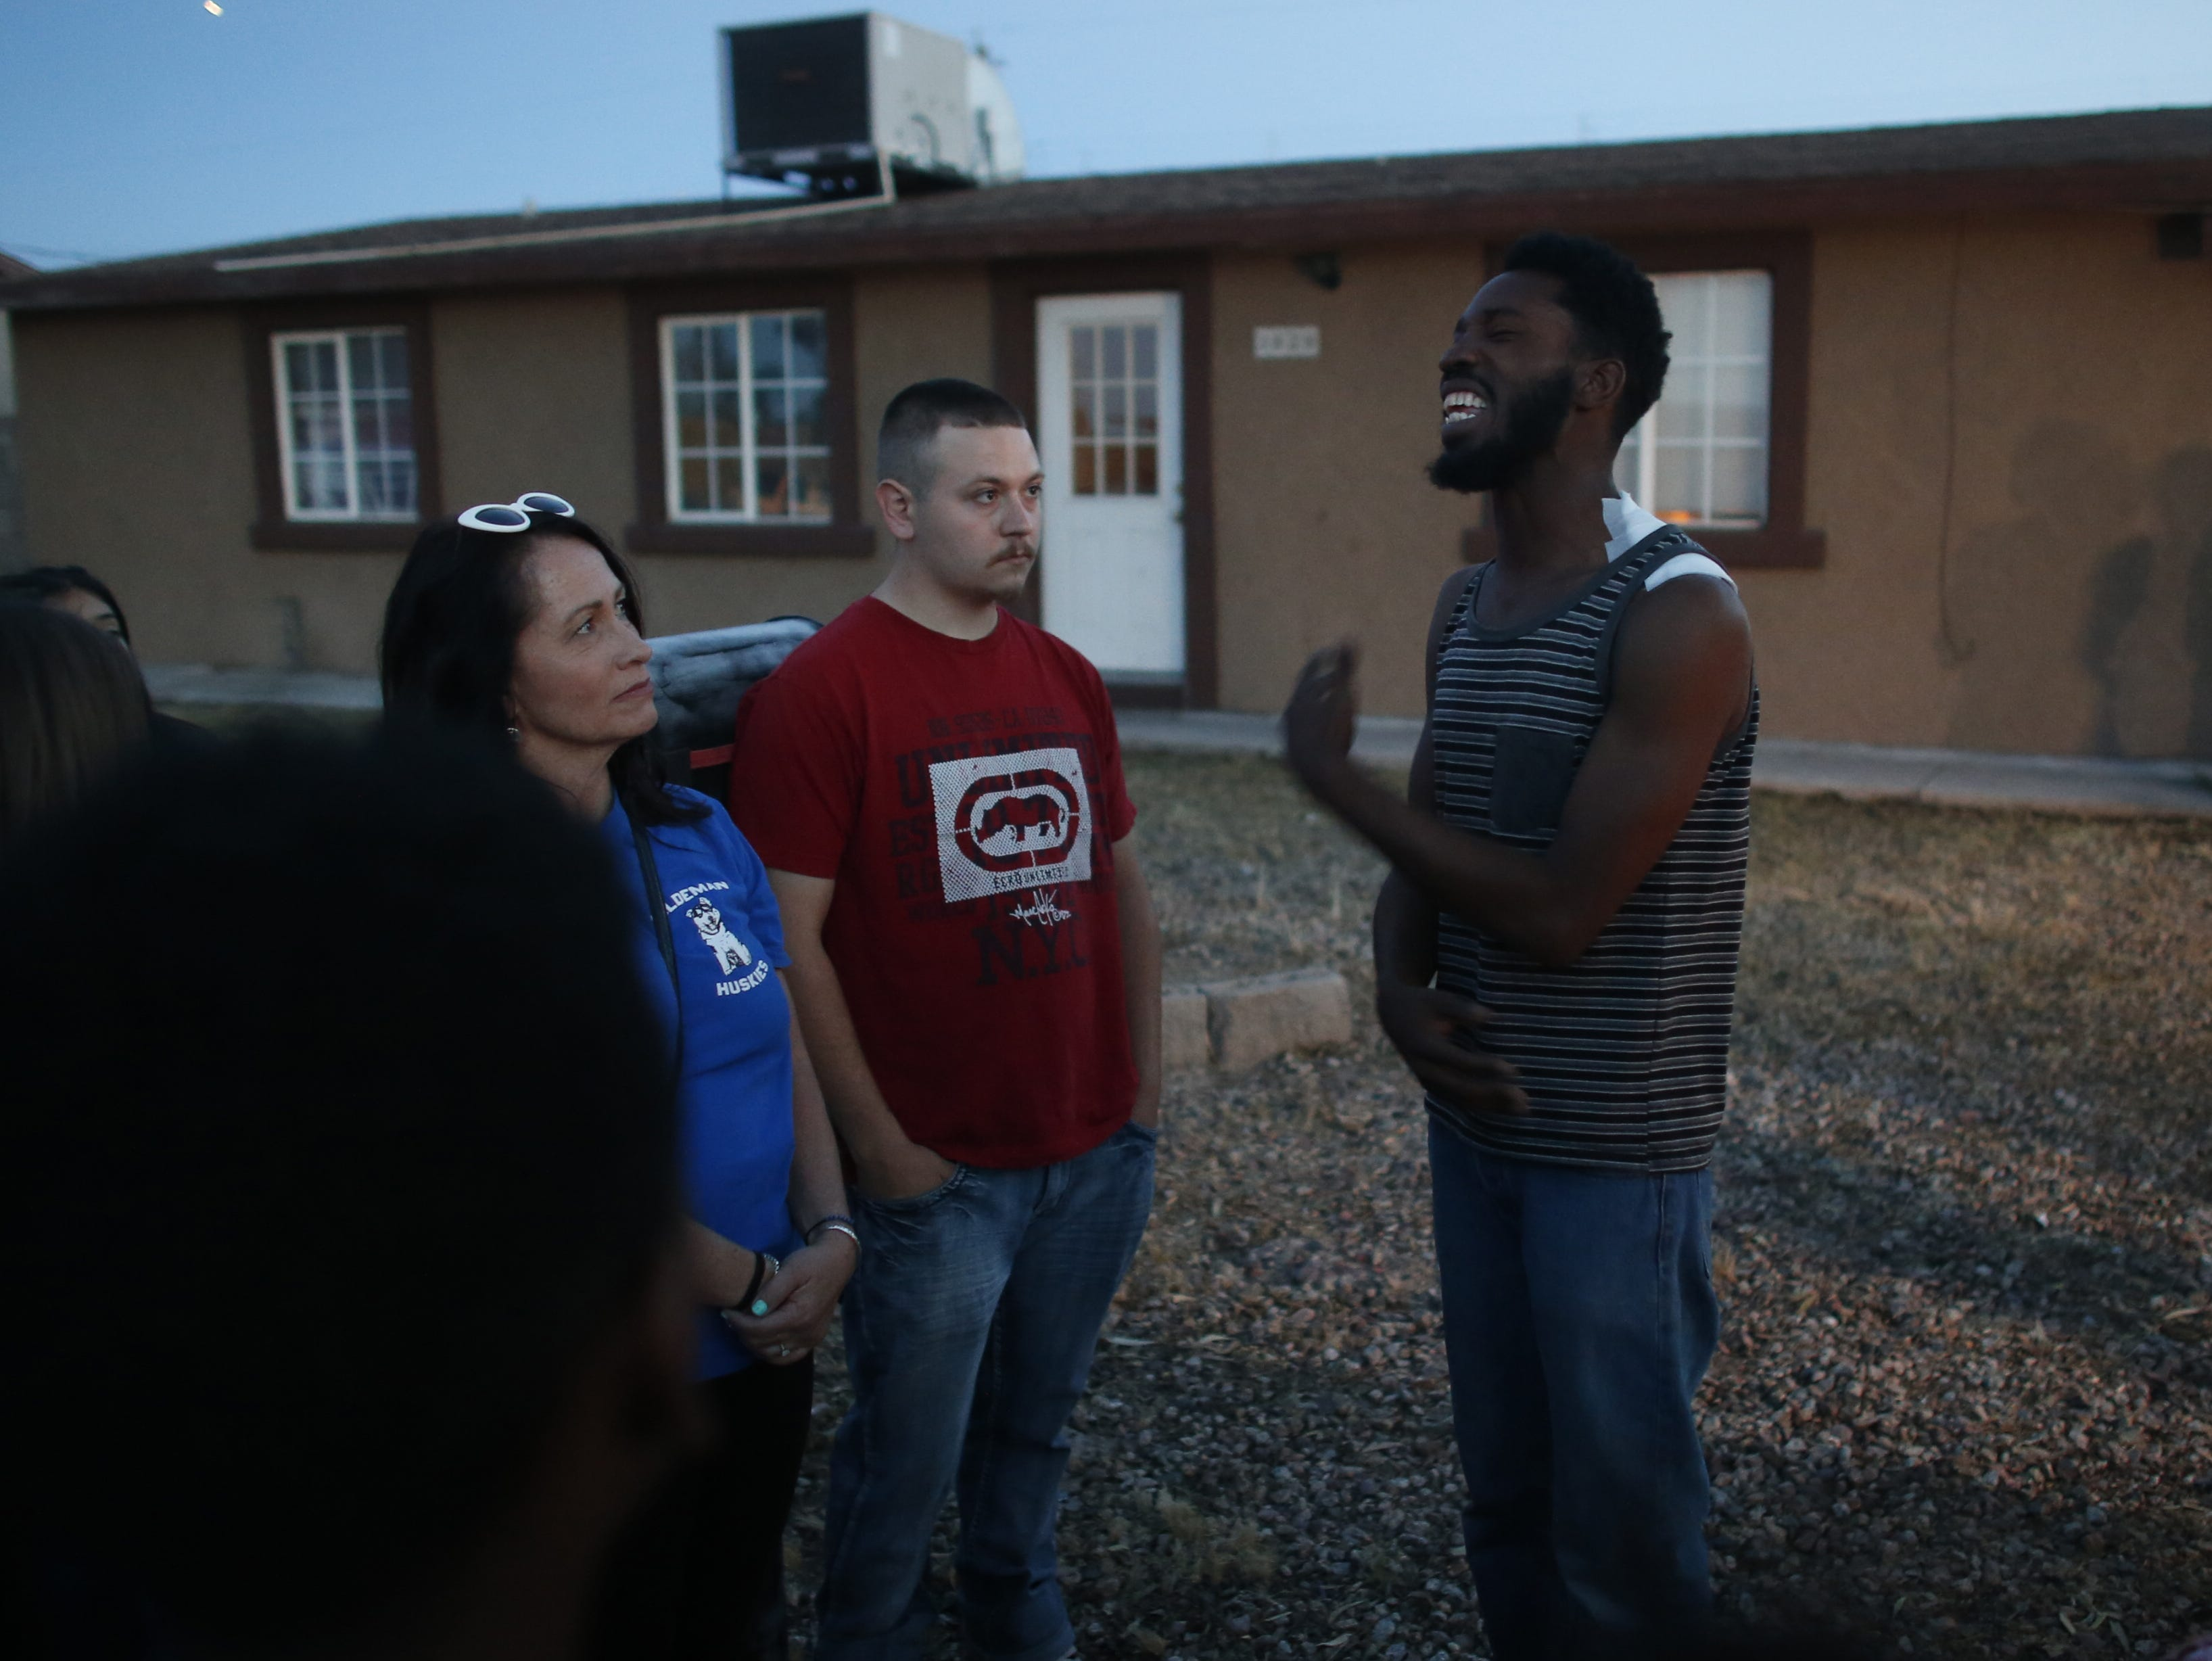 Summer Bell's father Dharquintium Brown speaks to those who came to support the family at a vigil for Summer Bell Brown on April 5, 2019, outside her home where she was shot and killed in Phoenix.